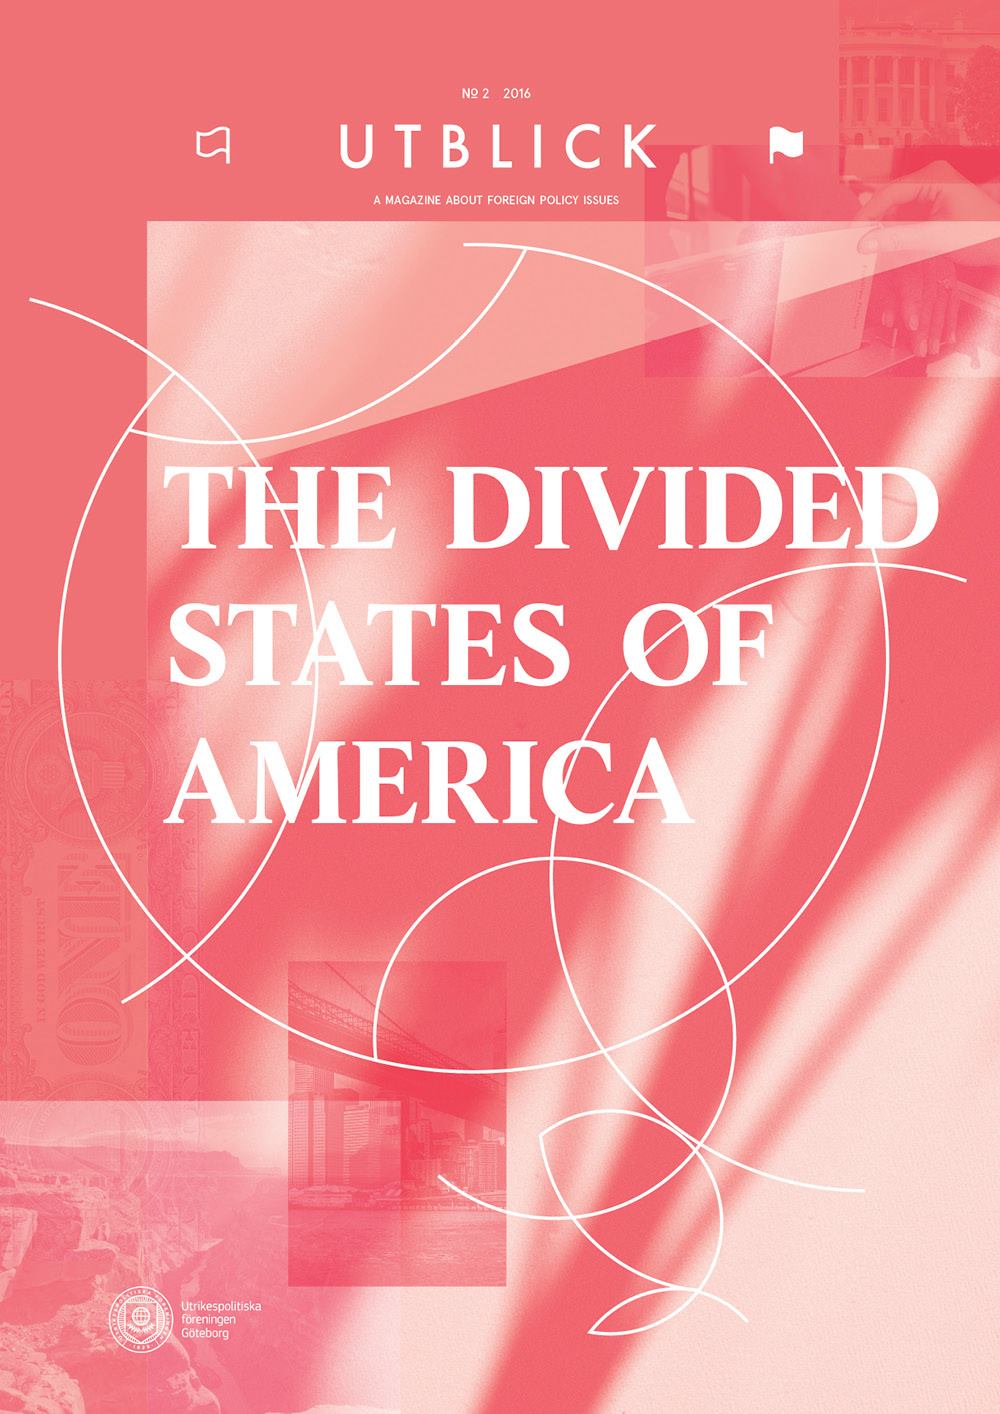 New Issue of Utblick: The Divided States of America